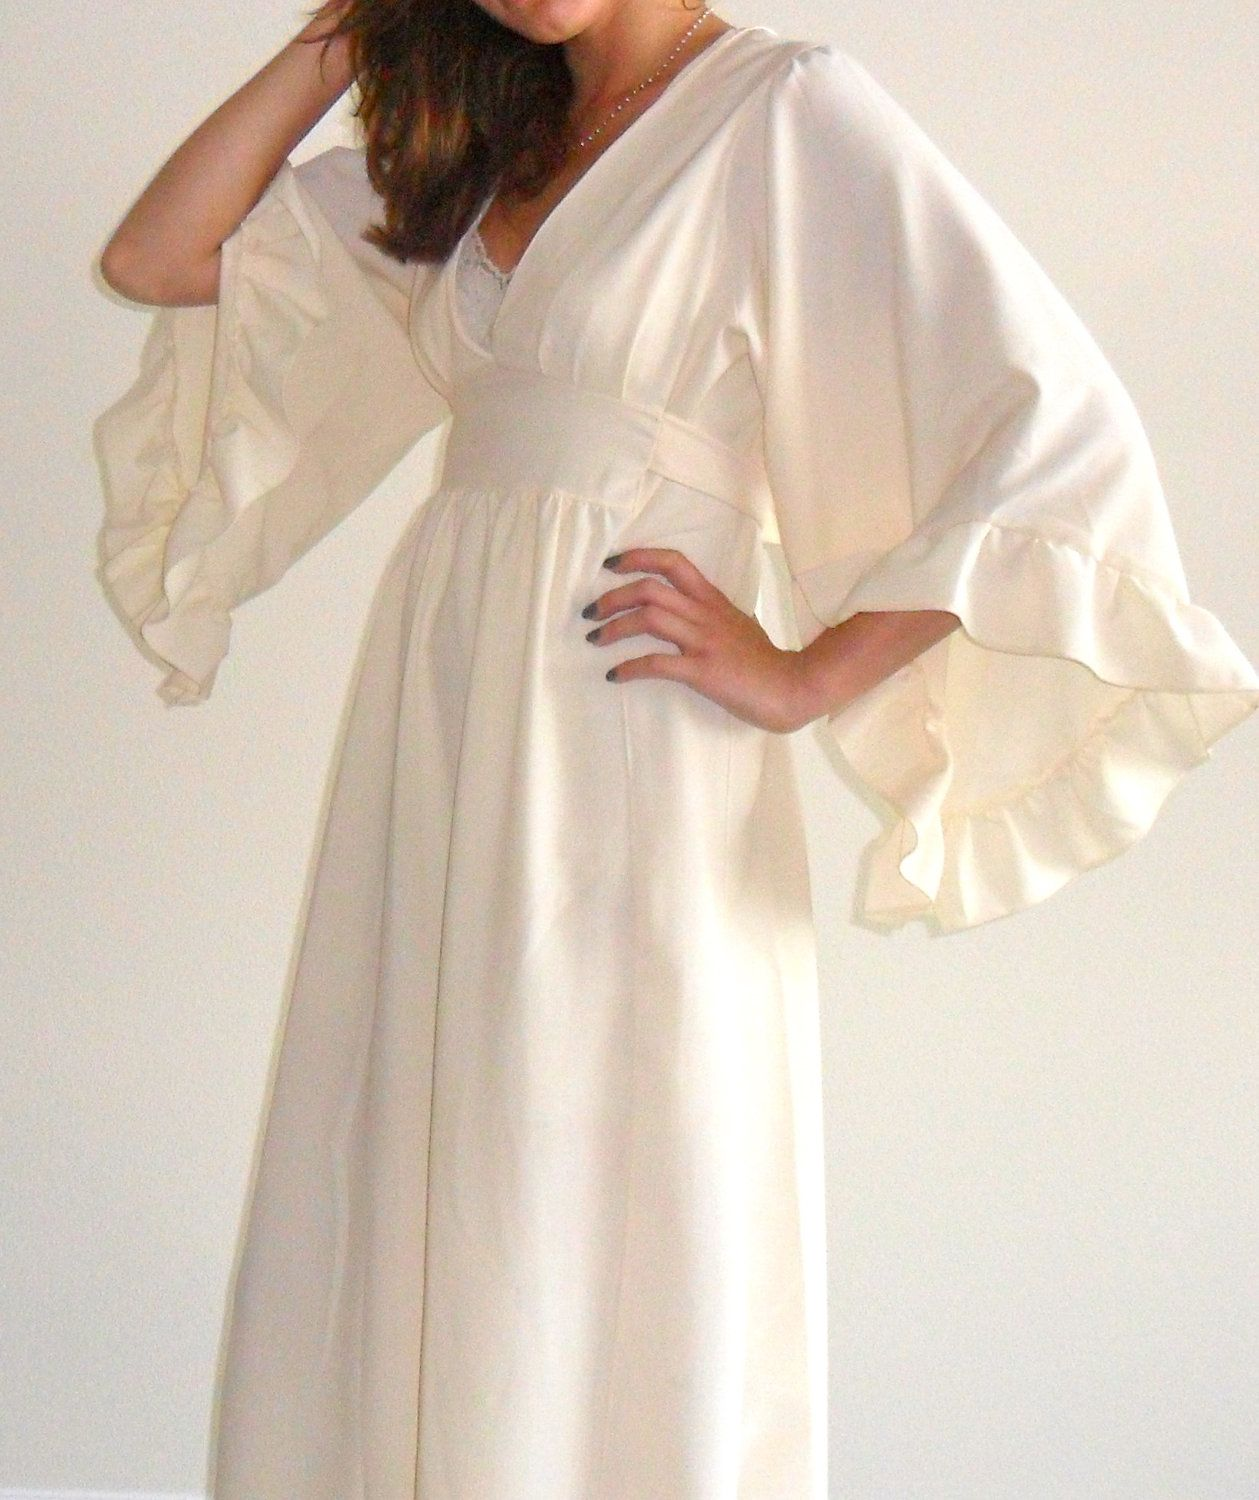 Bohemian hippie wedding inspired creamcolored maxi prarie dress